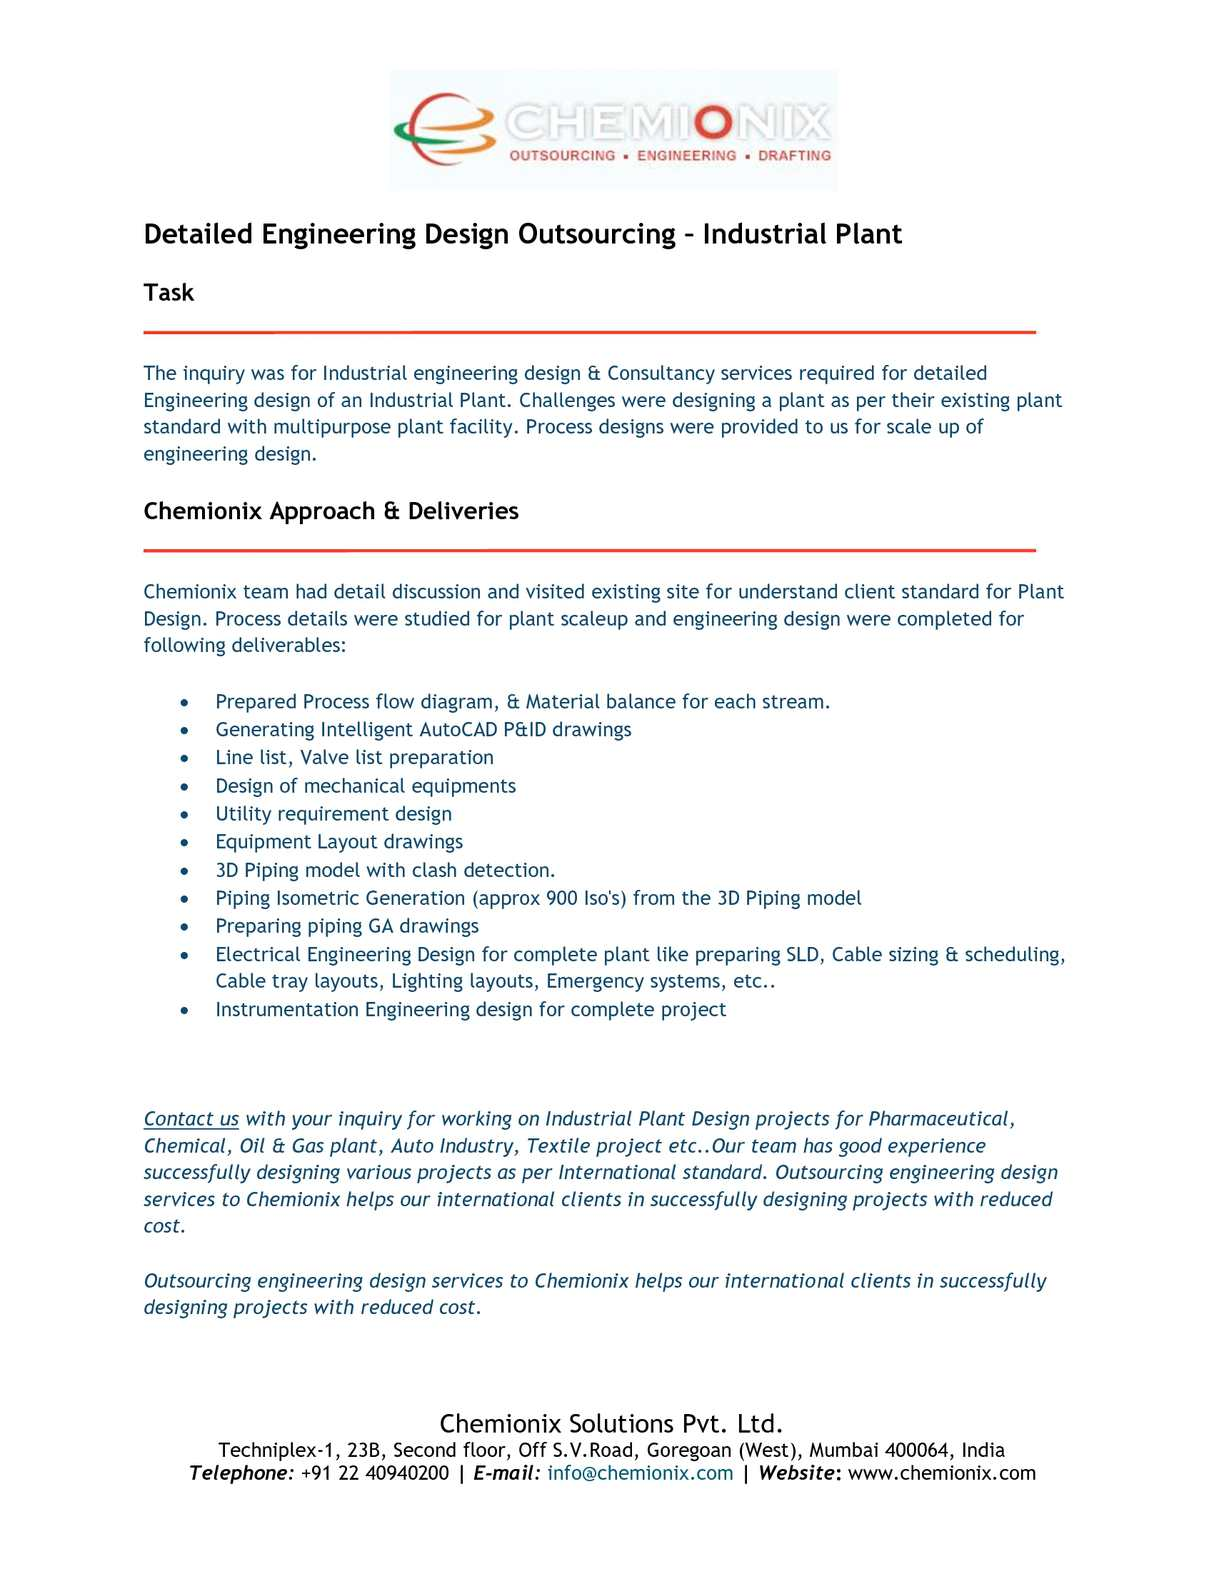 Calameo Detailed Engineering Design Outsourcing Industrial Plant